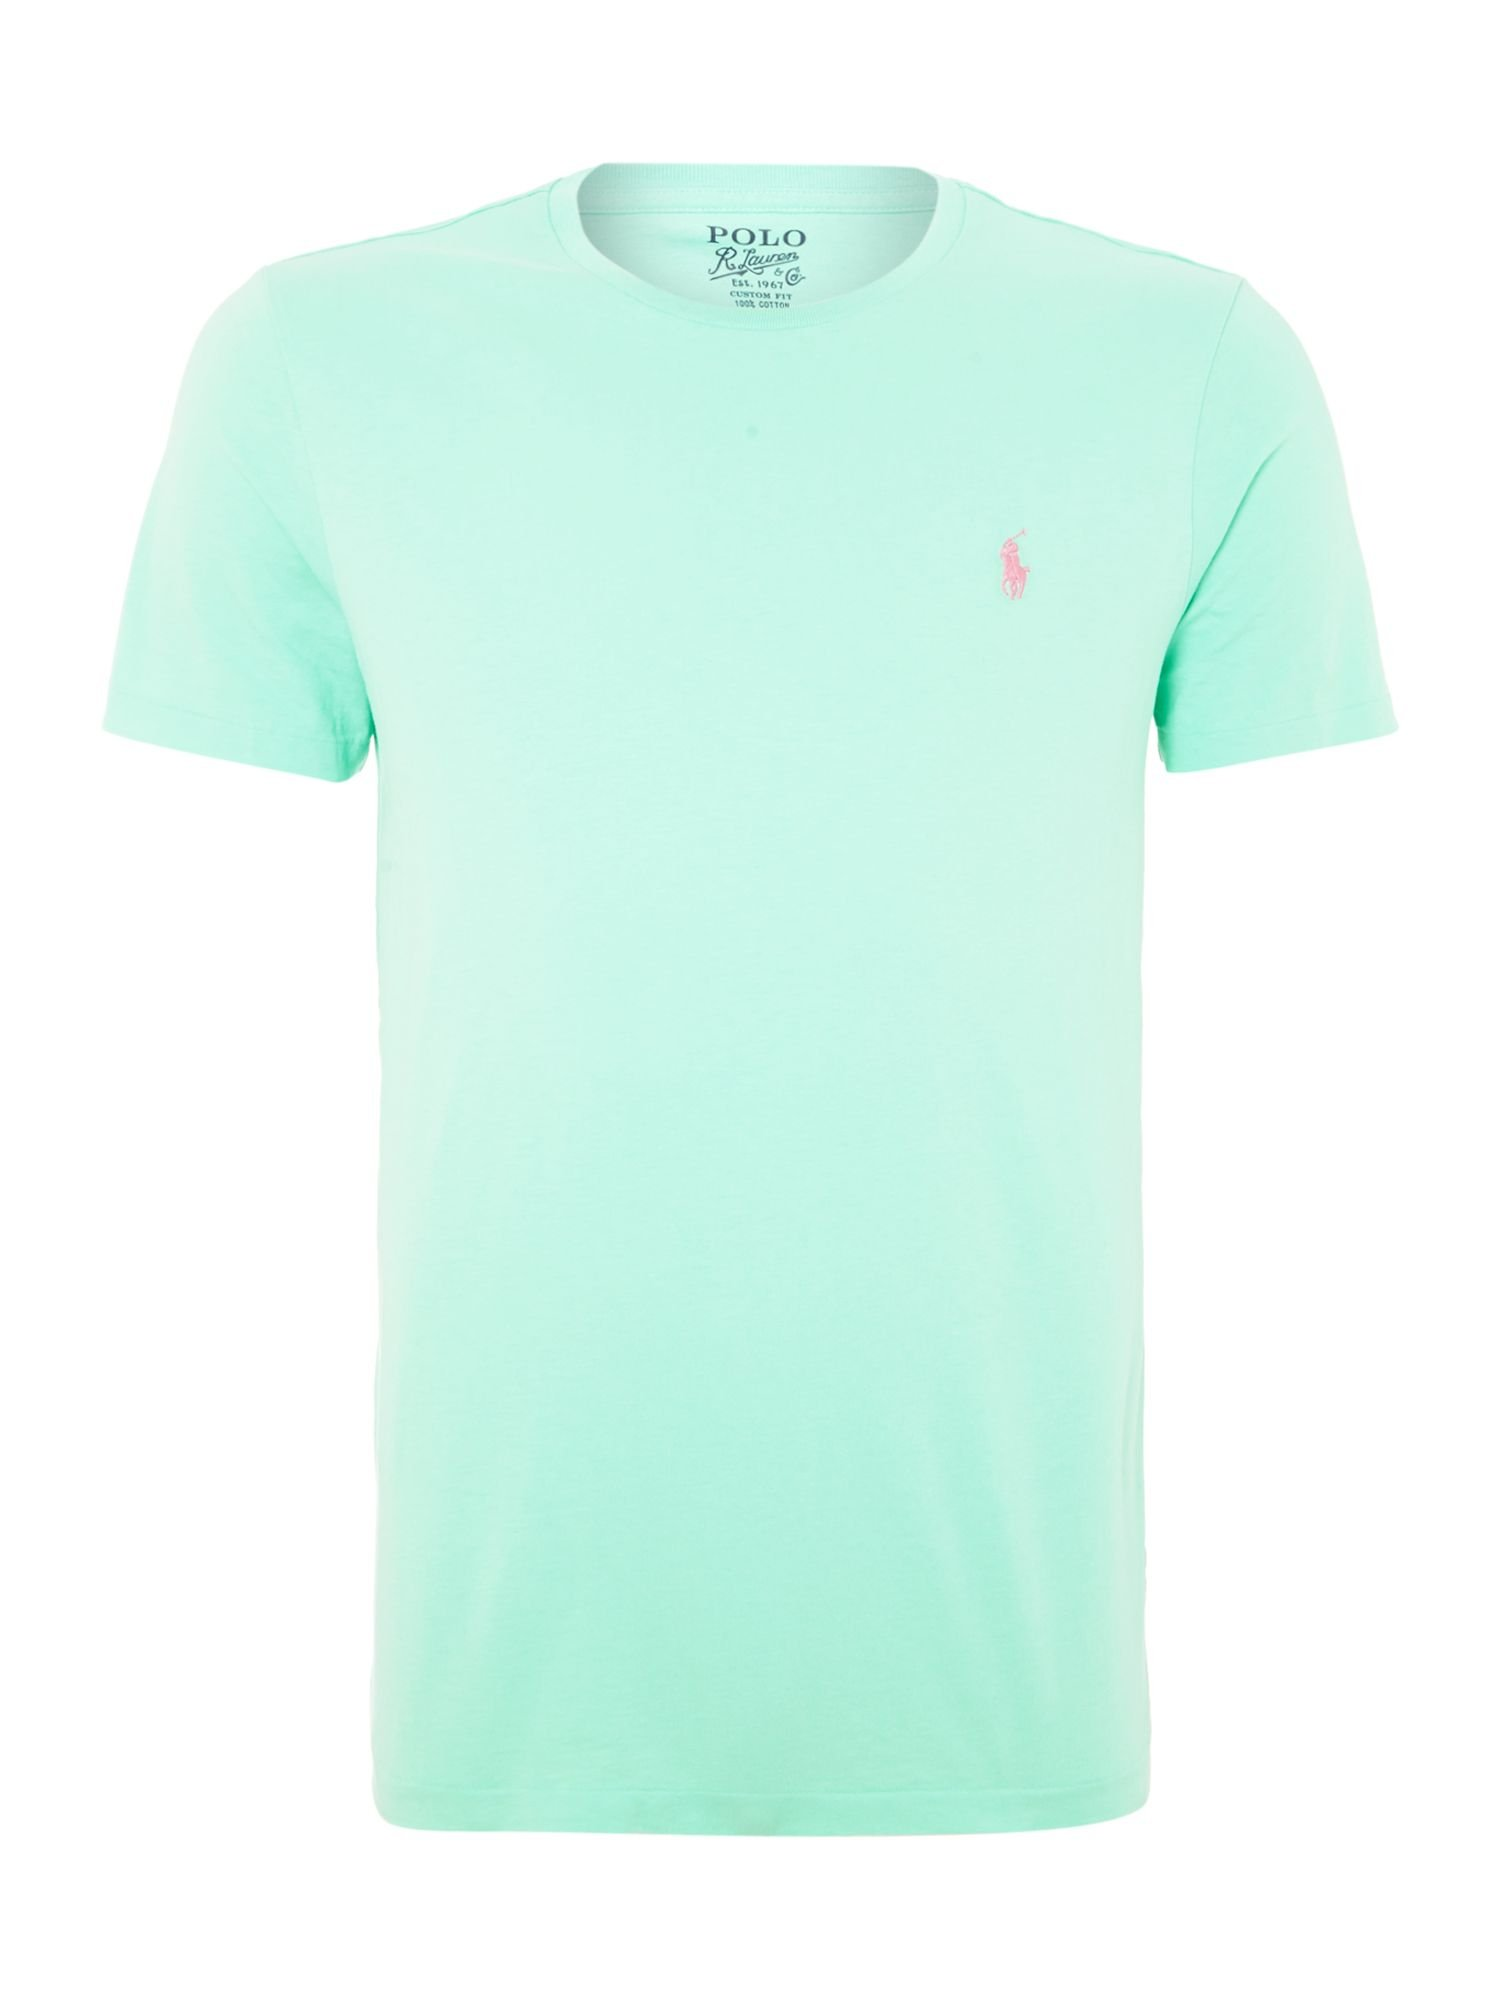 Polo ralph lauren classic custom fit tshirt in blue for for Mint color polo shirt